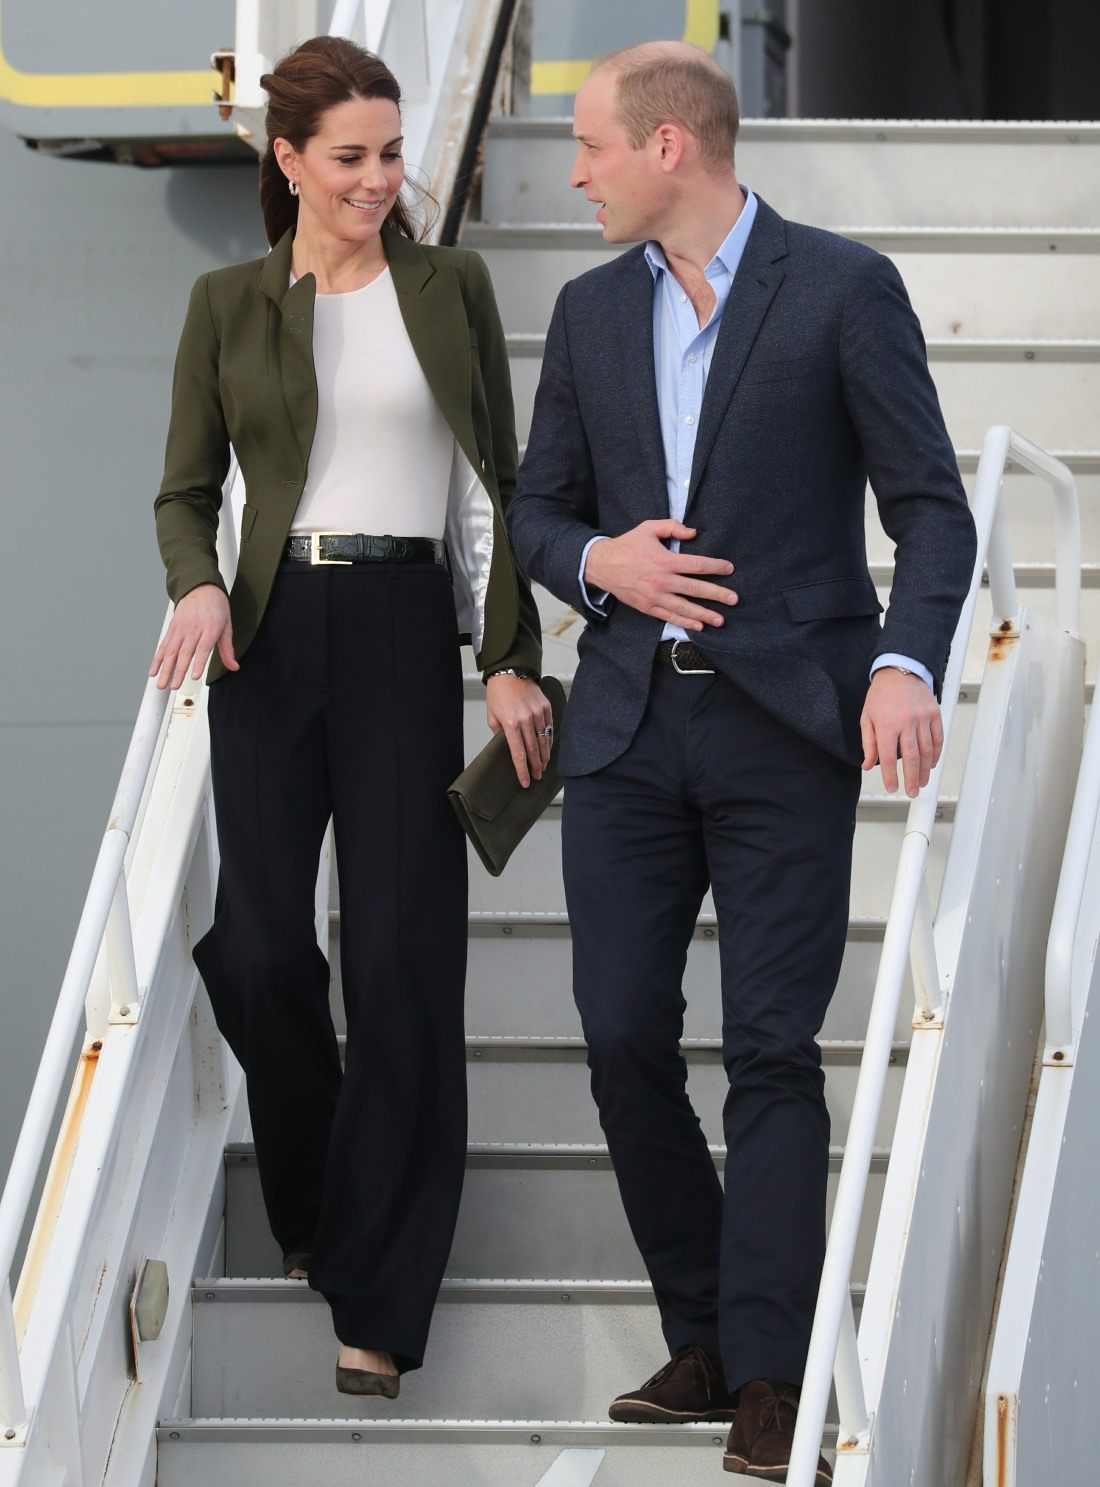 The Duke and Duchess of Cambridge visit Cyprus